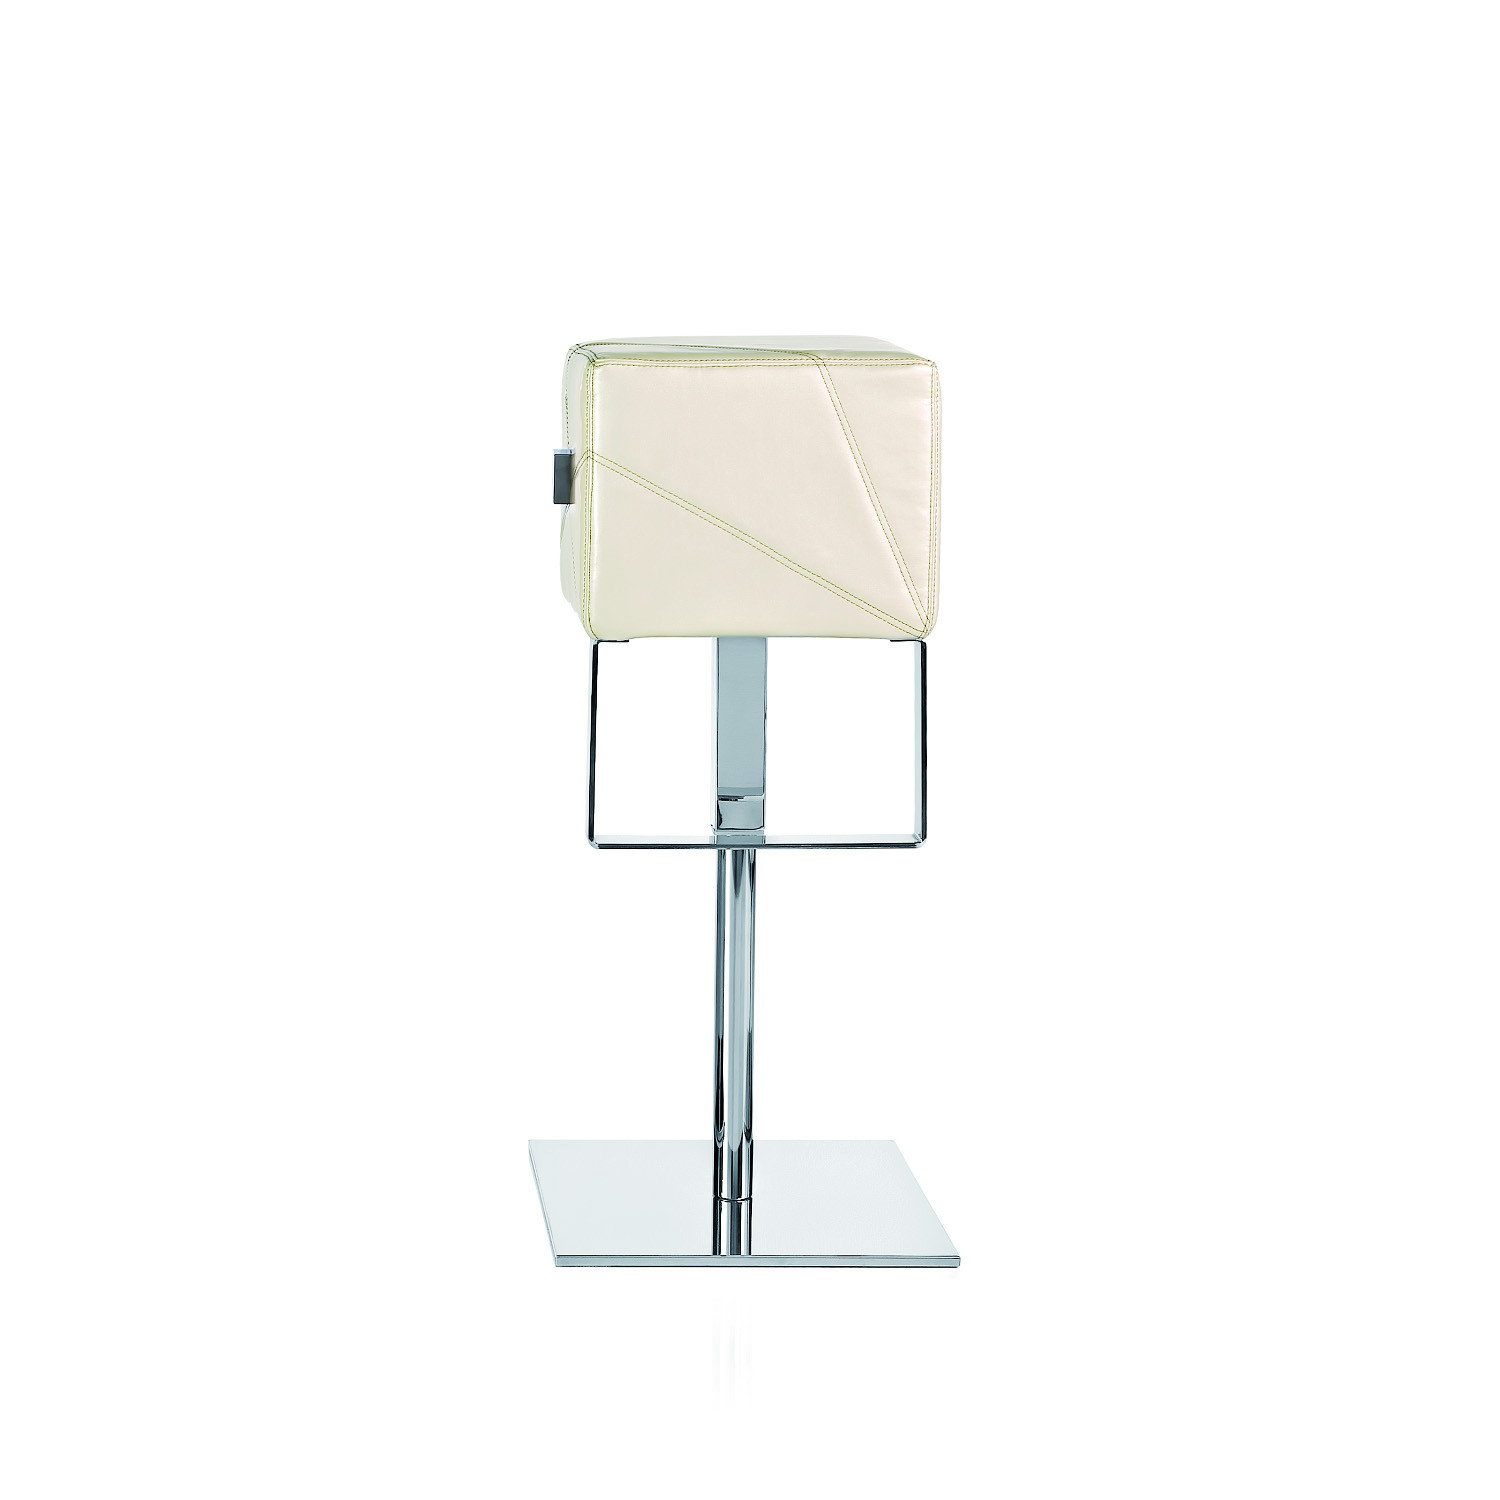 Cube Stool from Apres